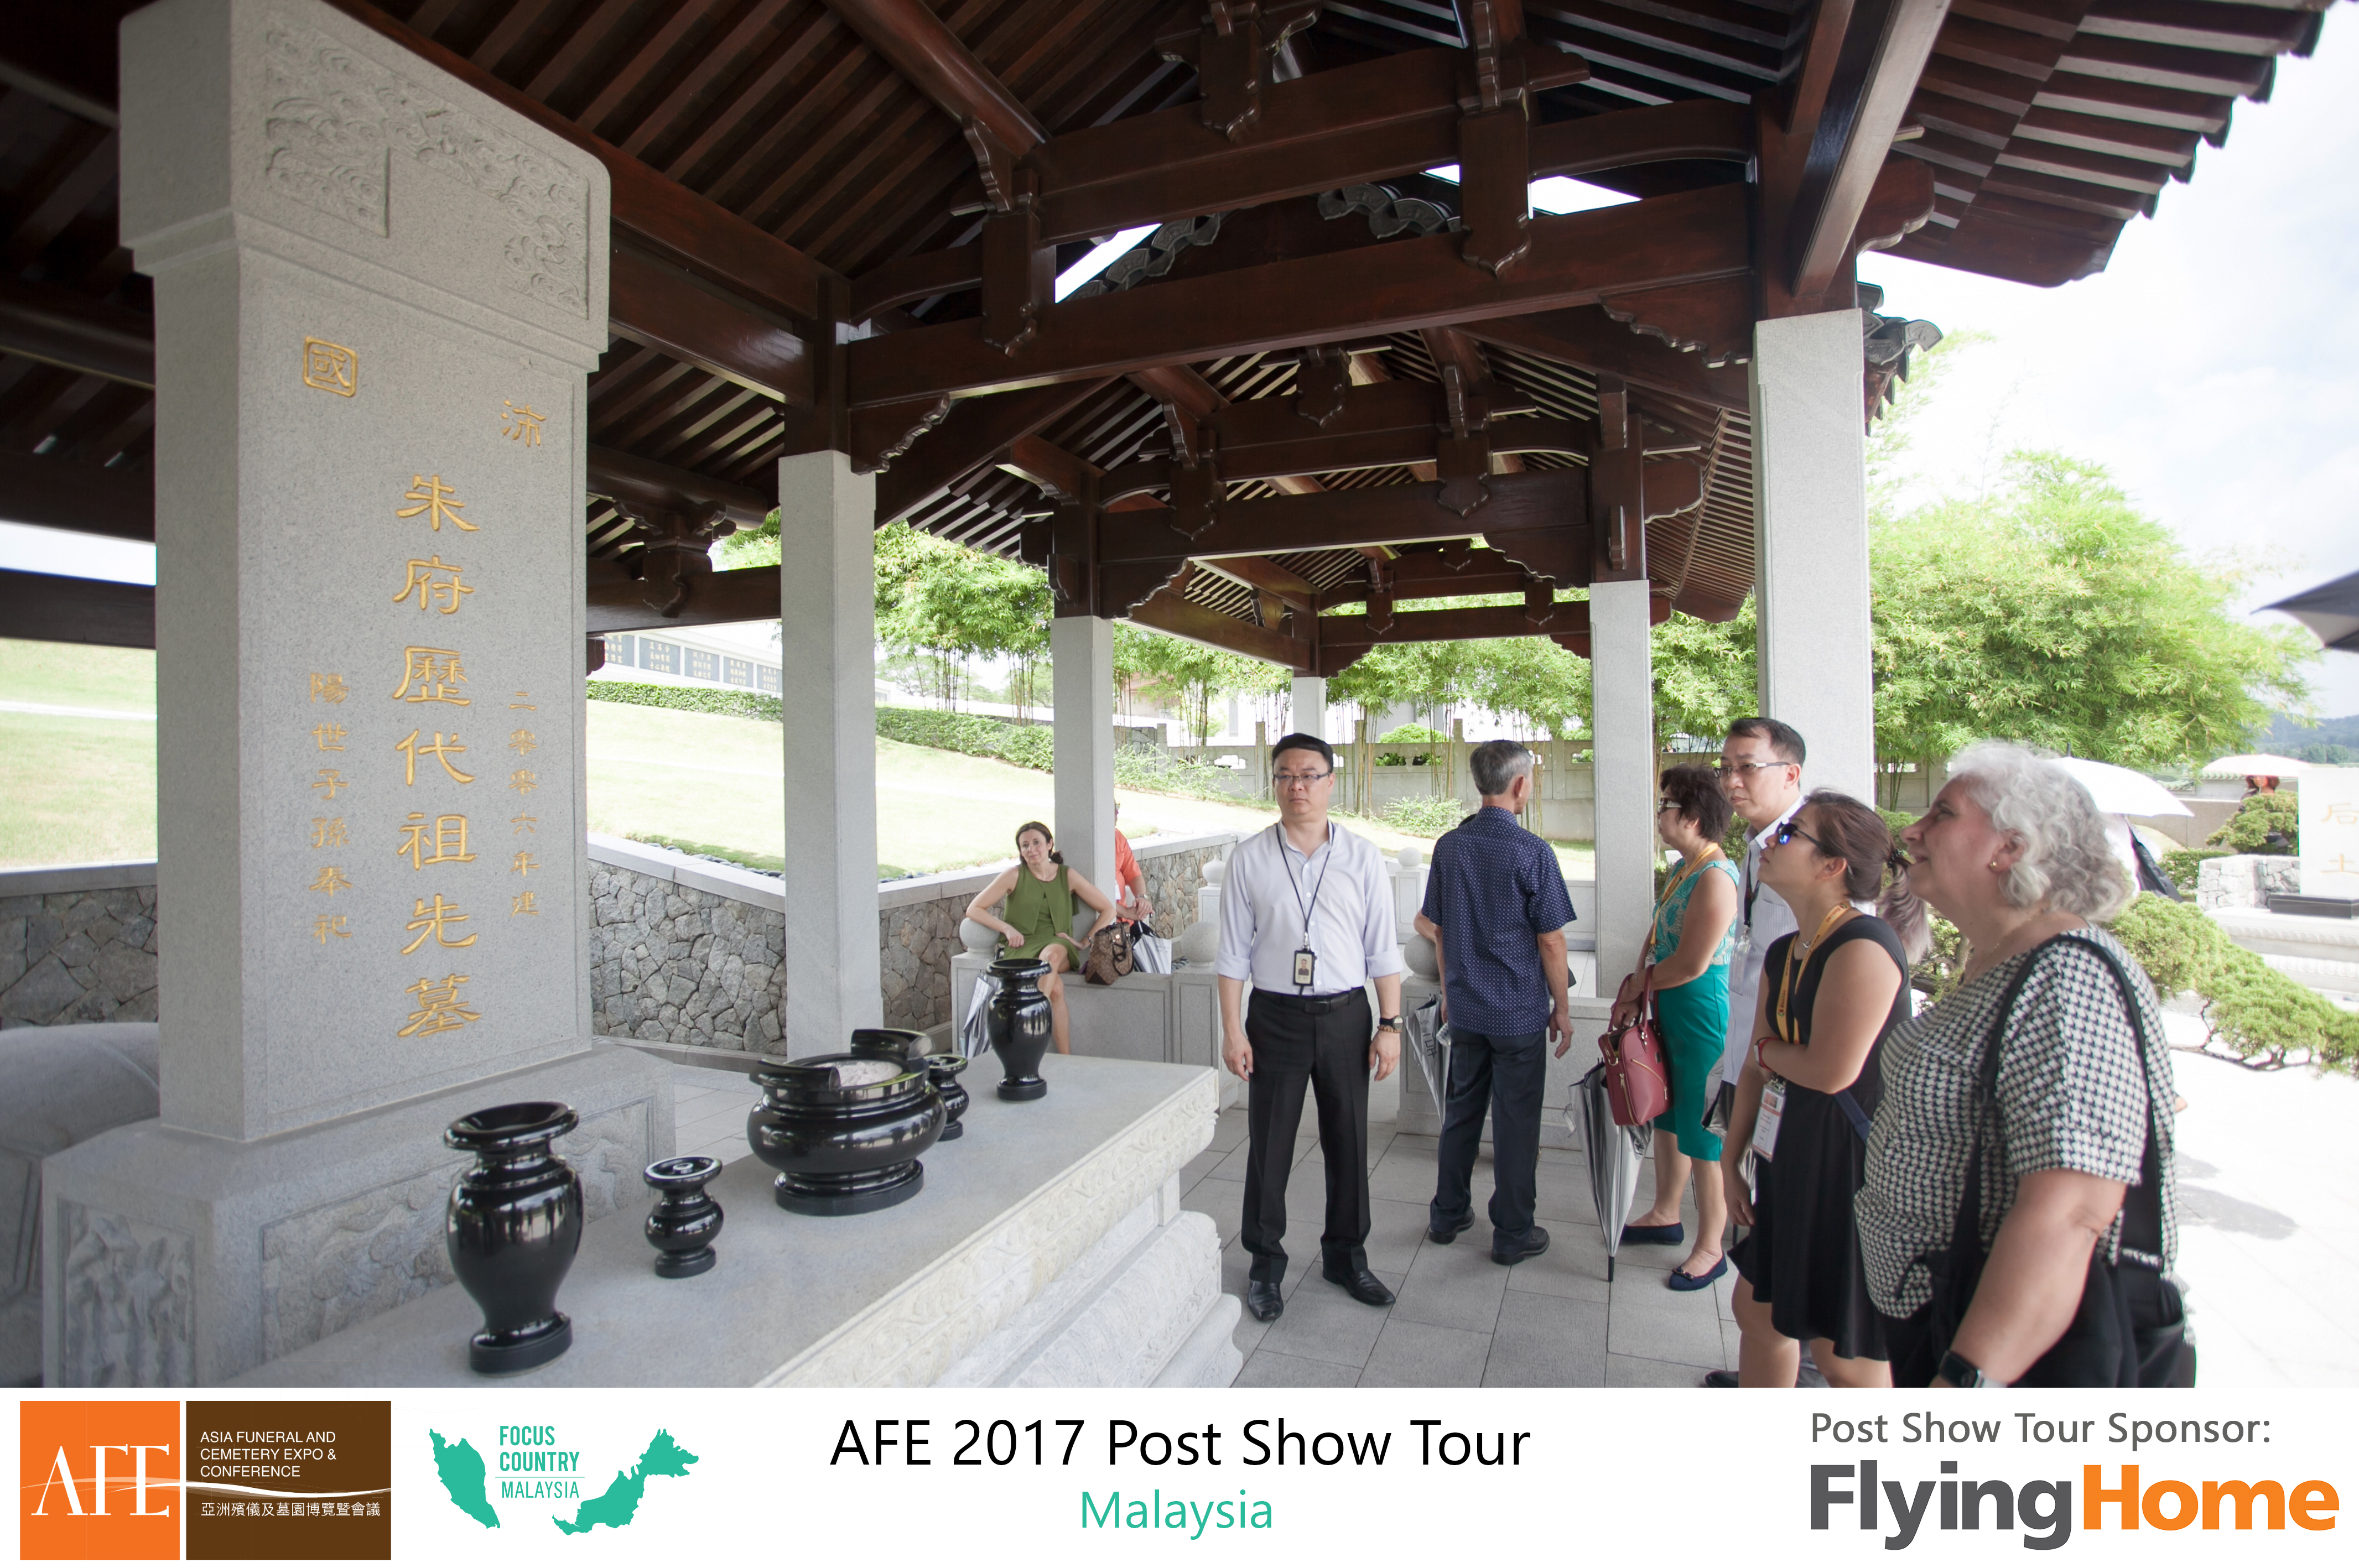 AFE Post Show Tour 2017 Day 3 -14